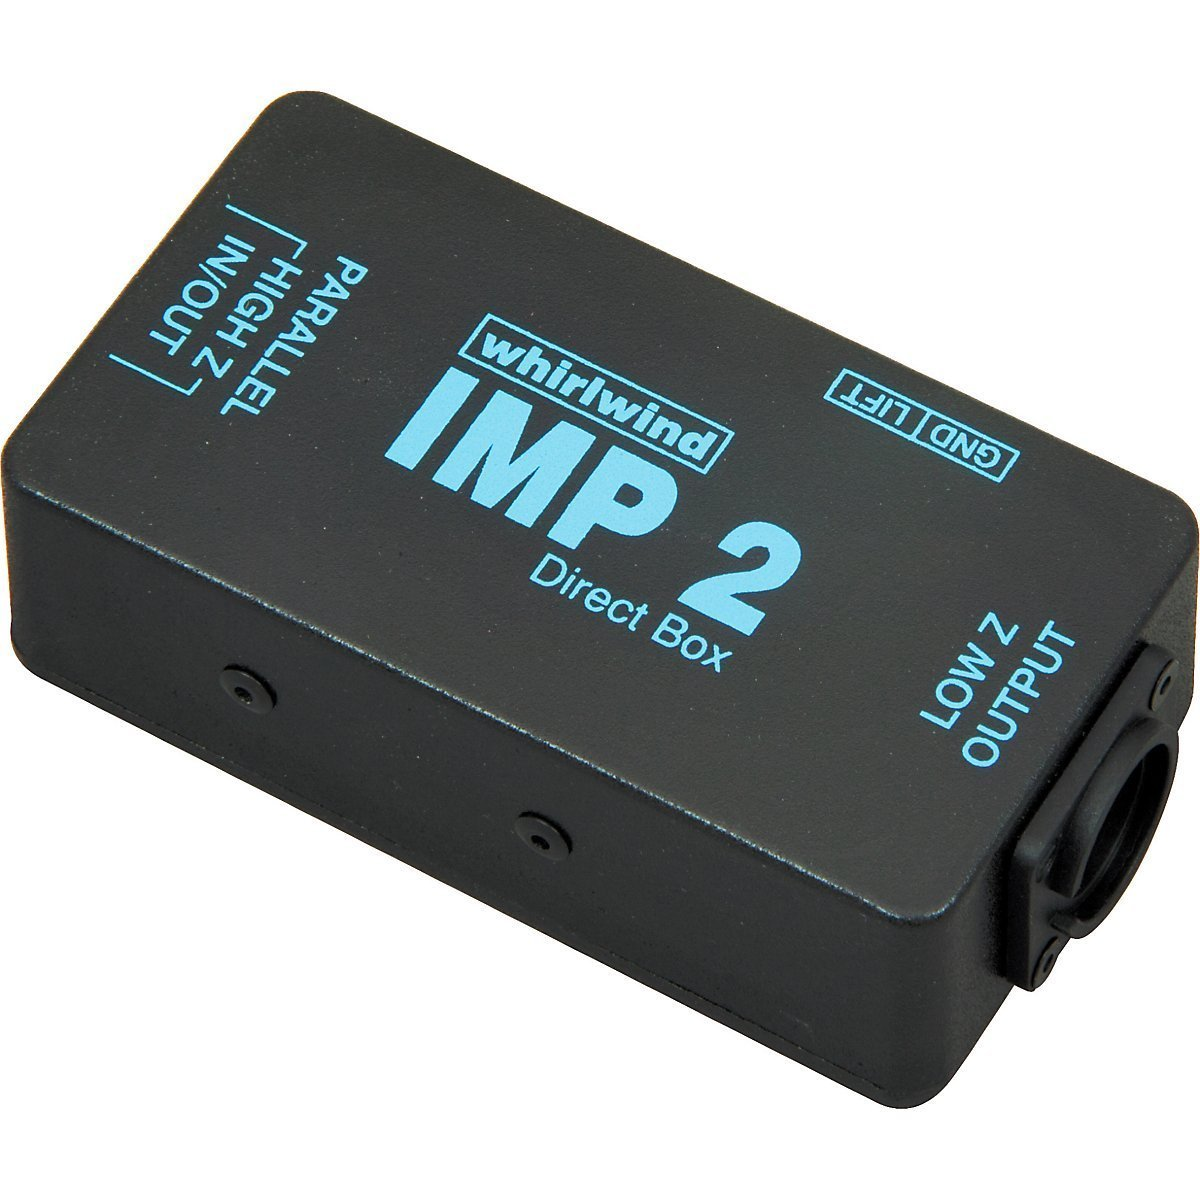 whirlwind imp 2 standard direct box review